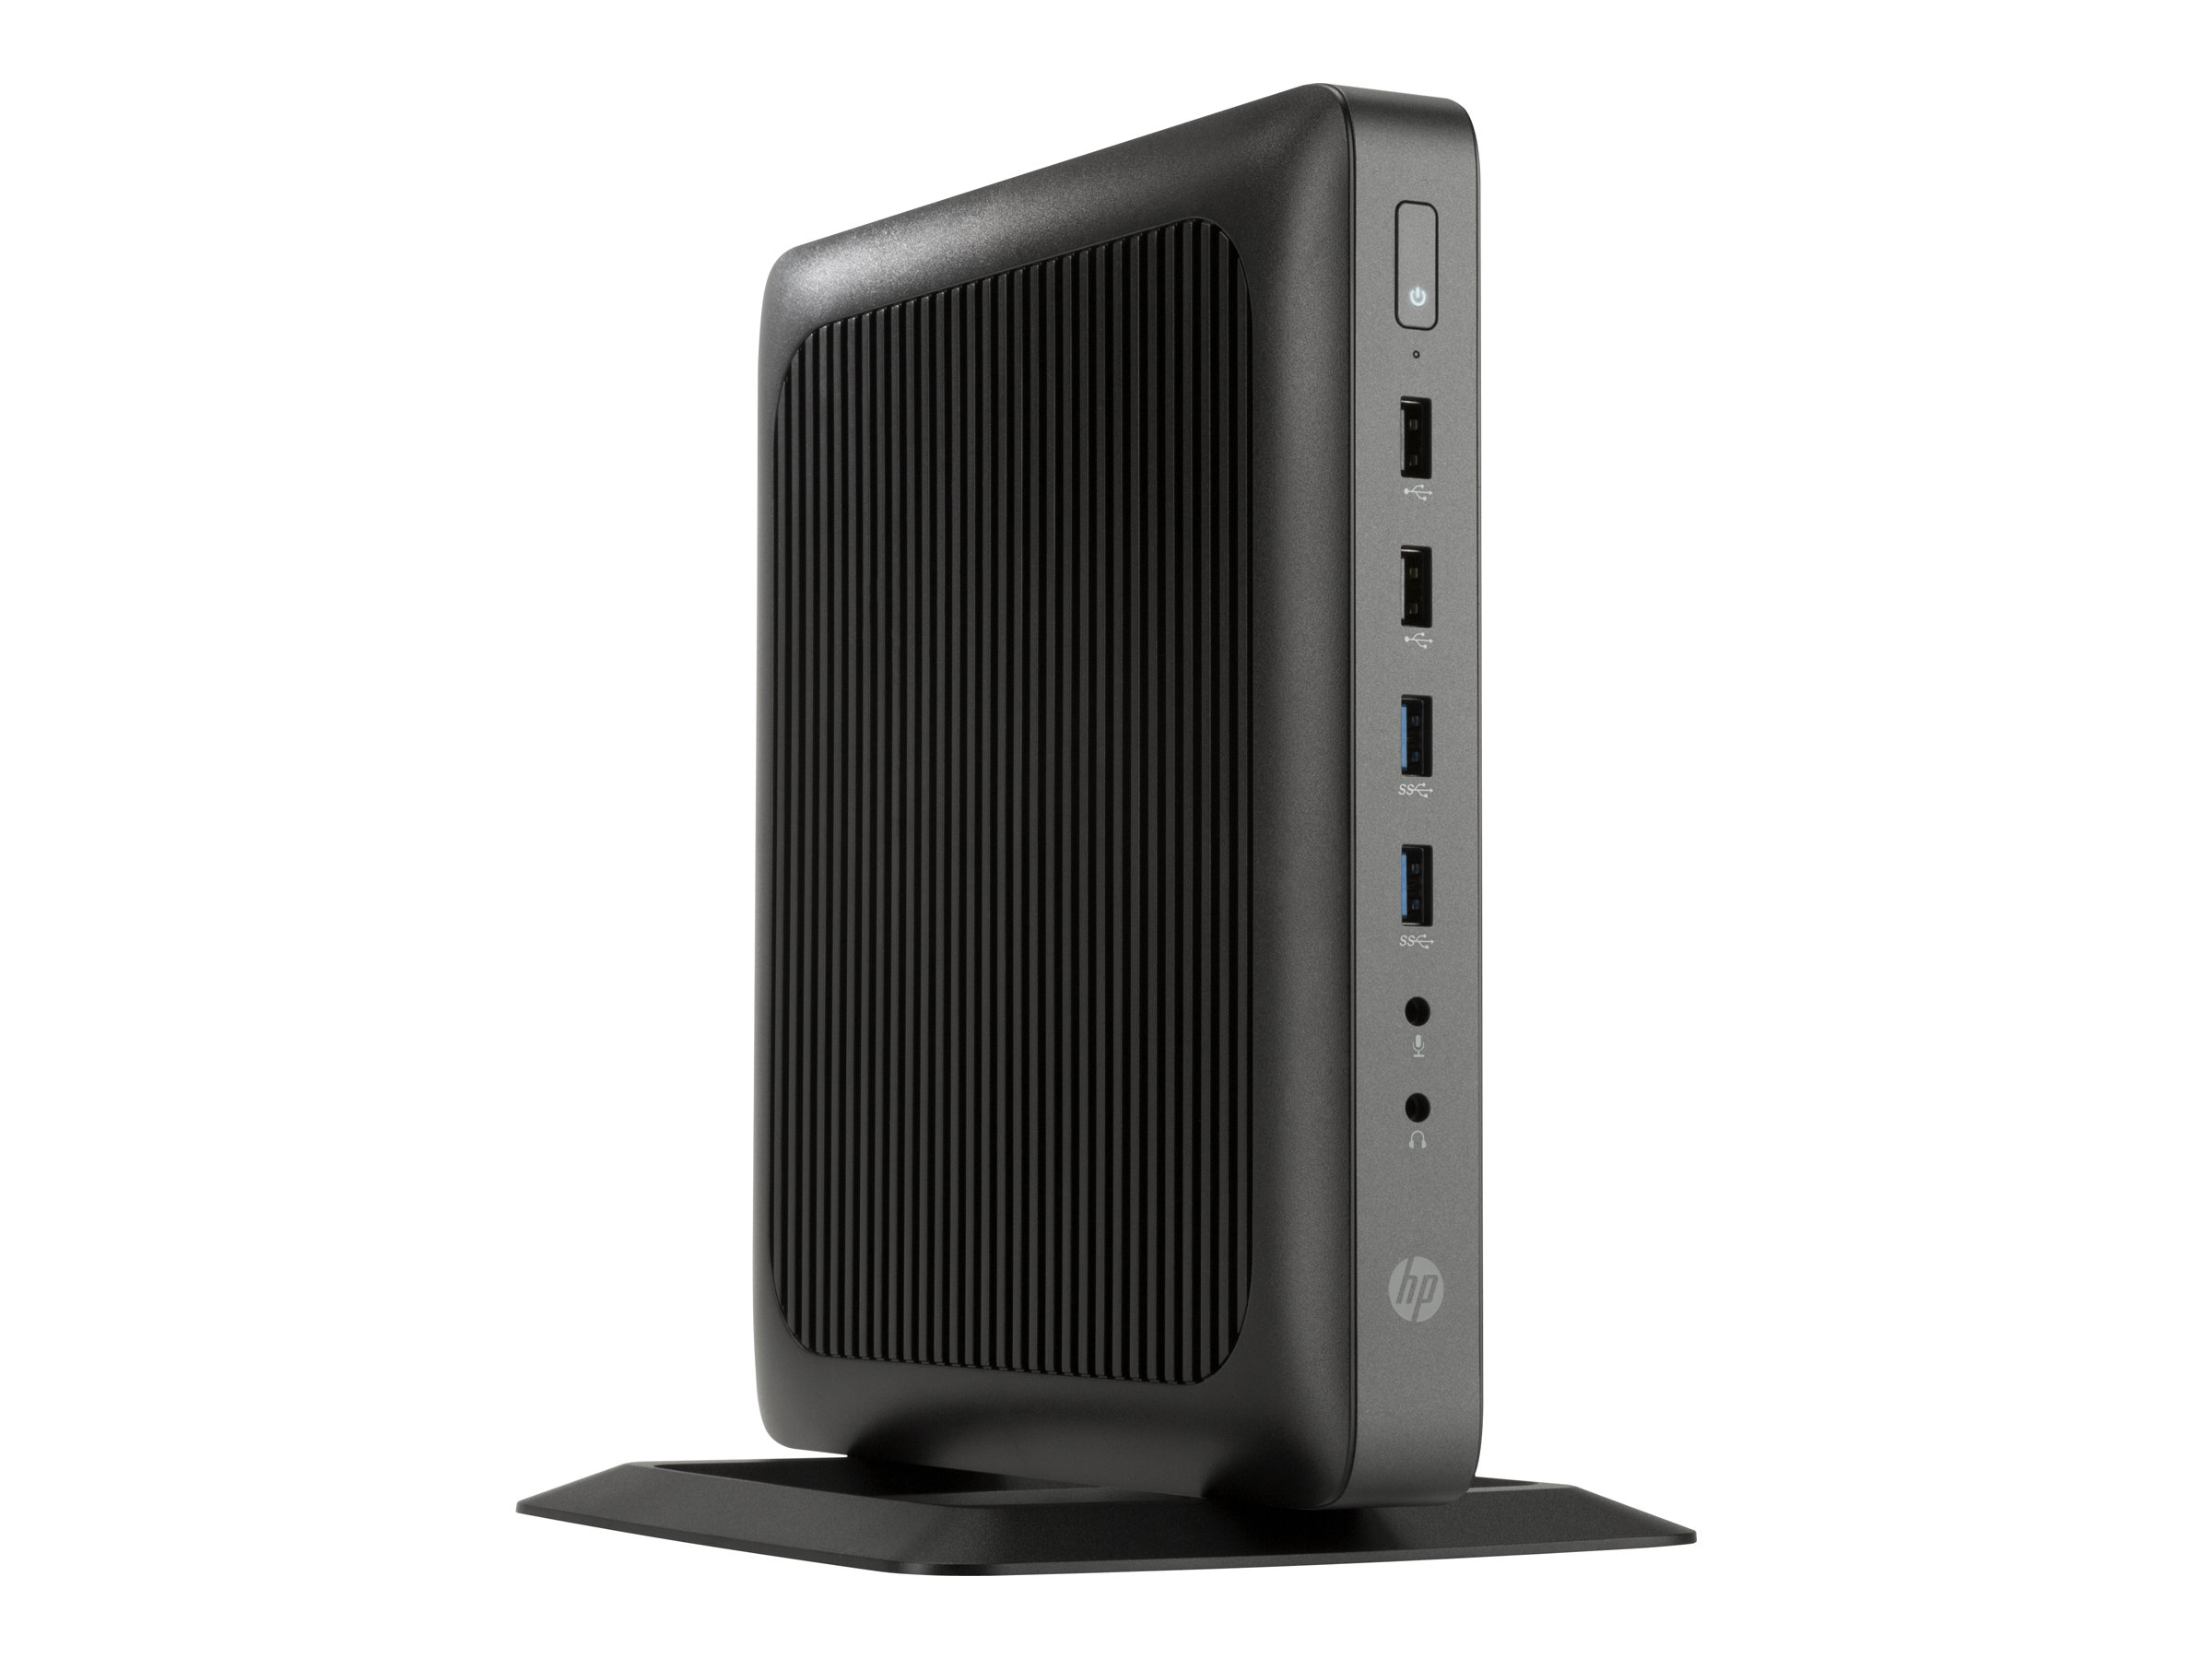 HP Flexible Thin Client t620 - Thin Client - Tower - 1 x GX-415GA 1.5 GHz - RAM 4 GB - SSD 16 GB